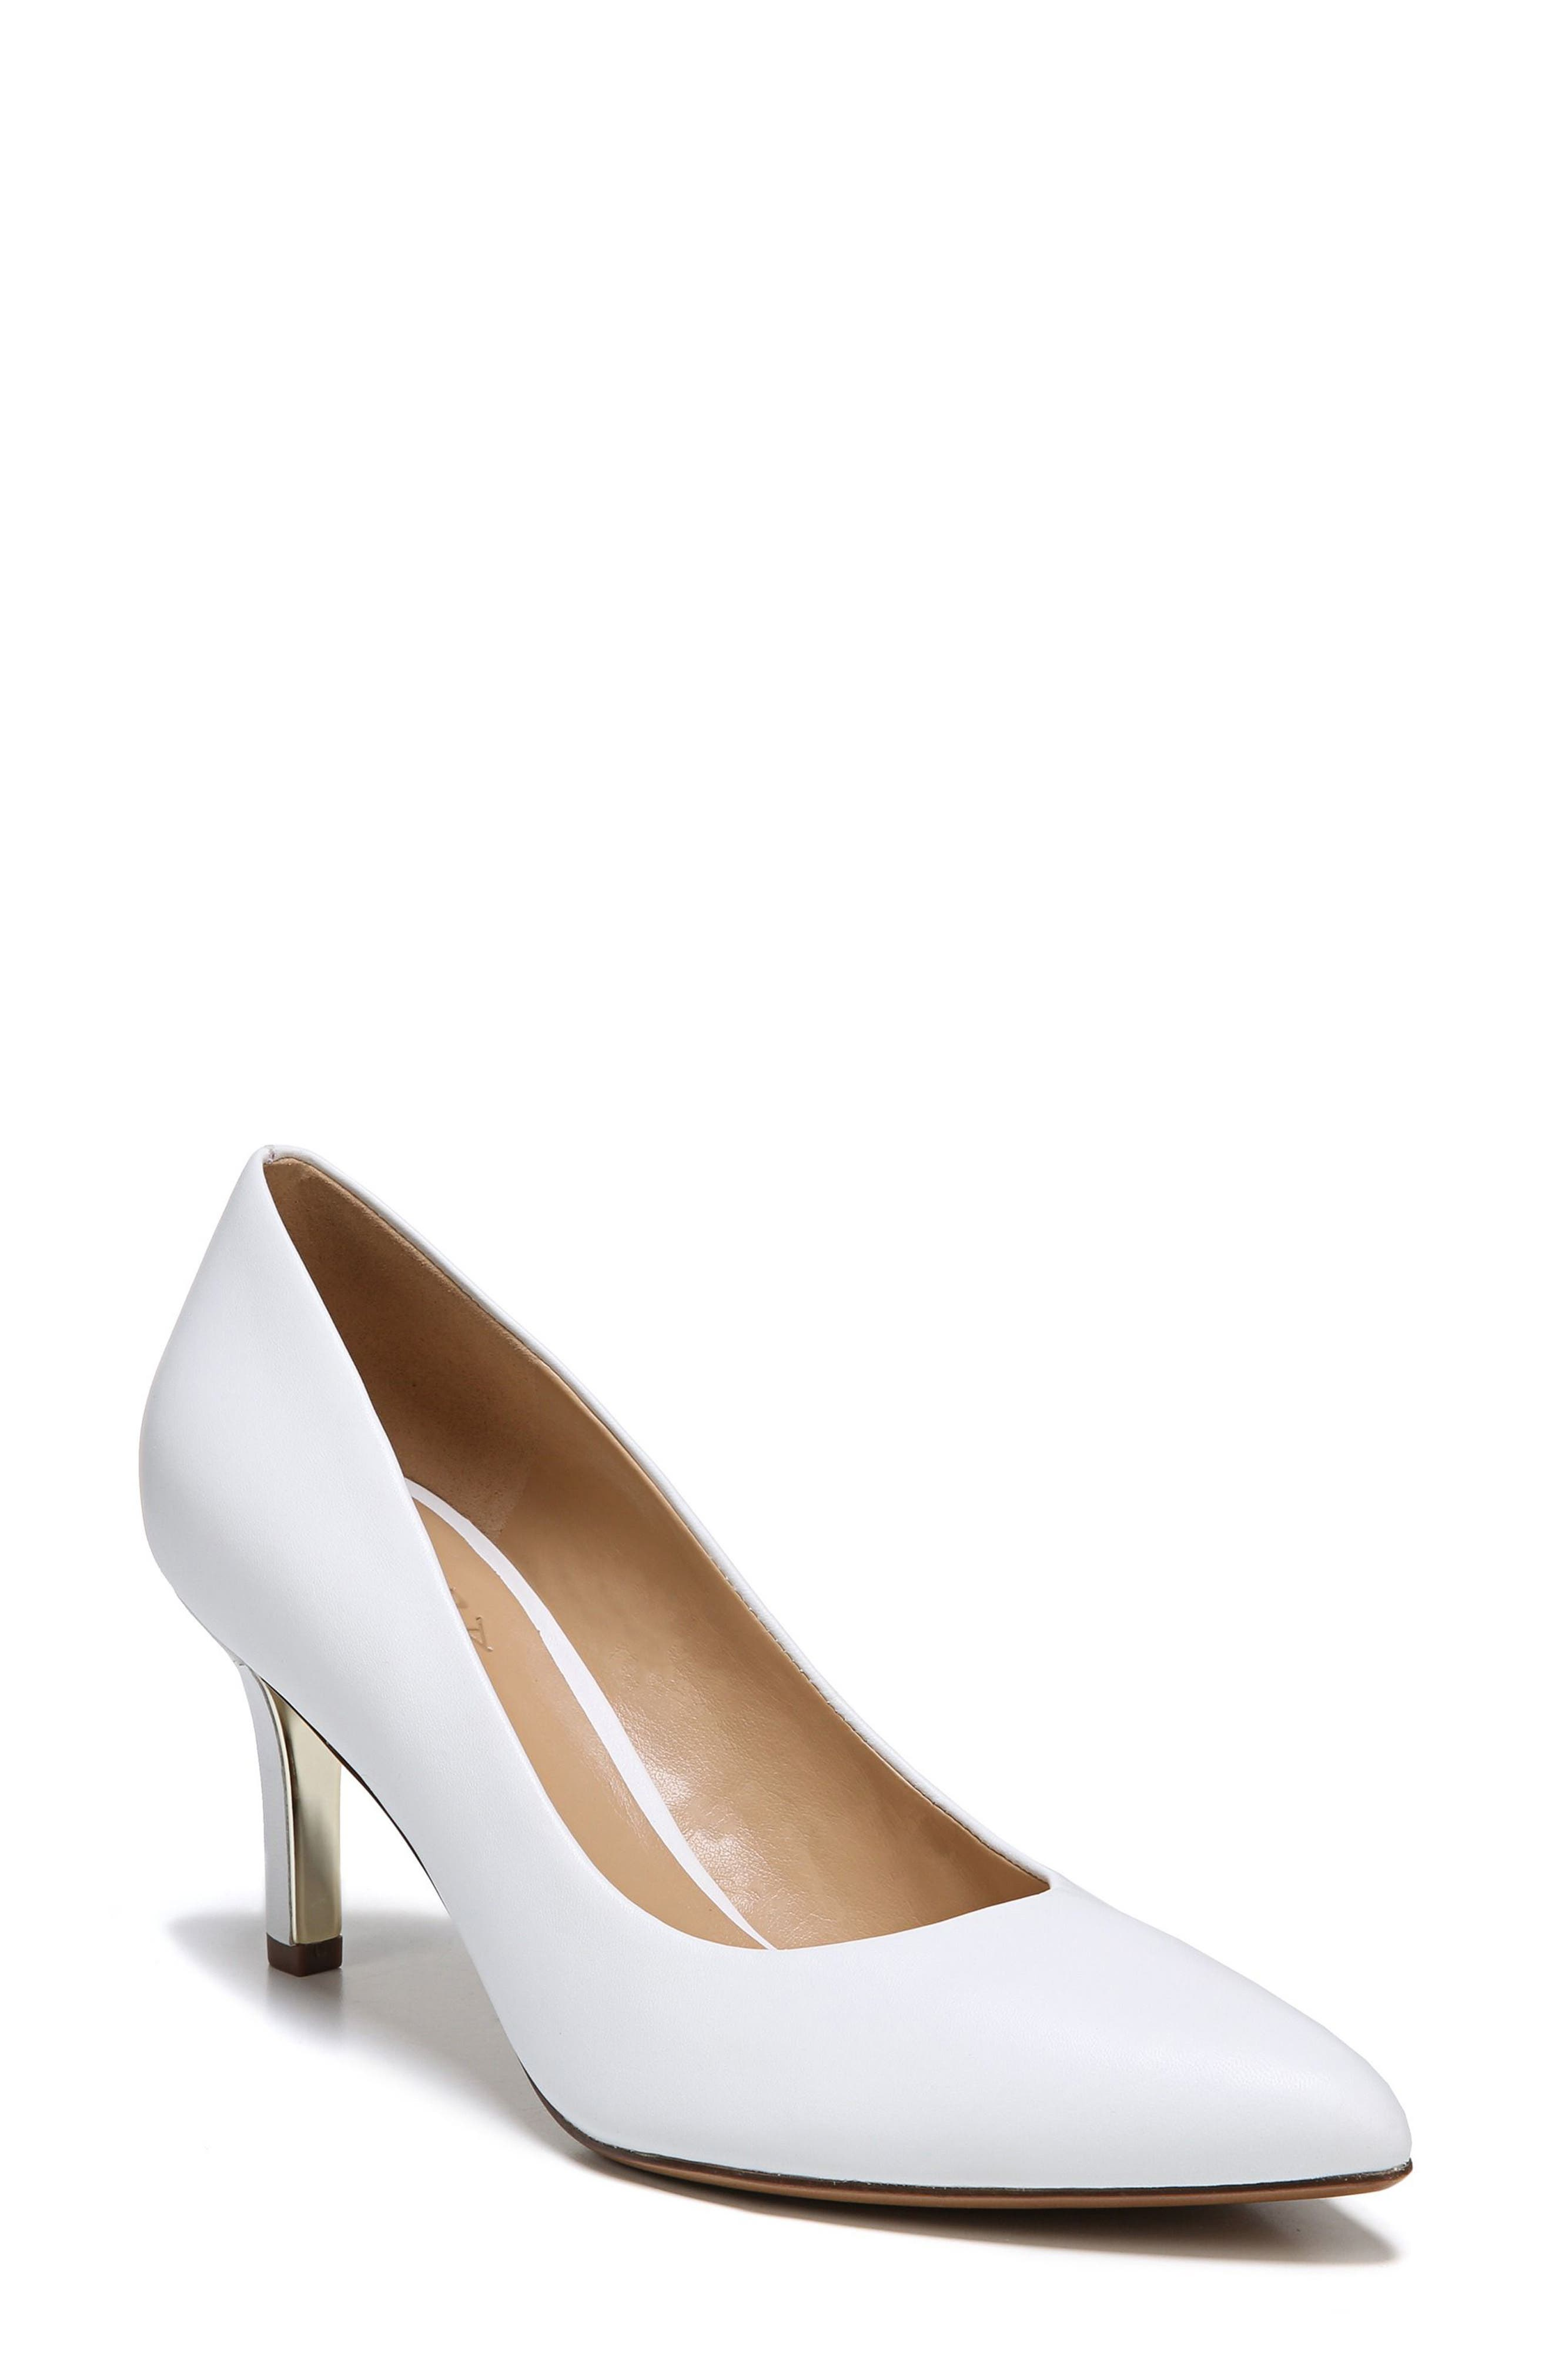 NATURALIZER Natalie Pointy Toe Pump, Main, color, WHITE LEATHER